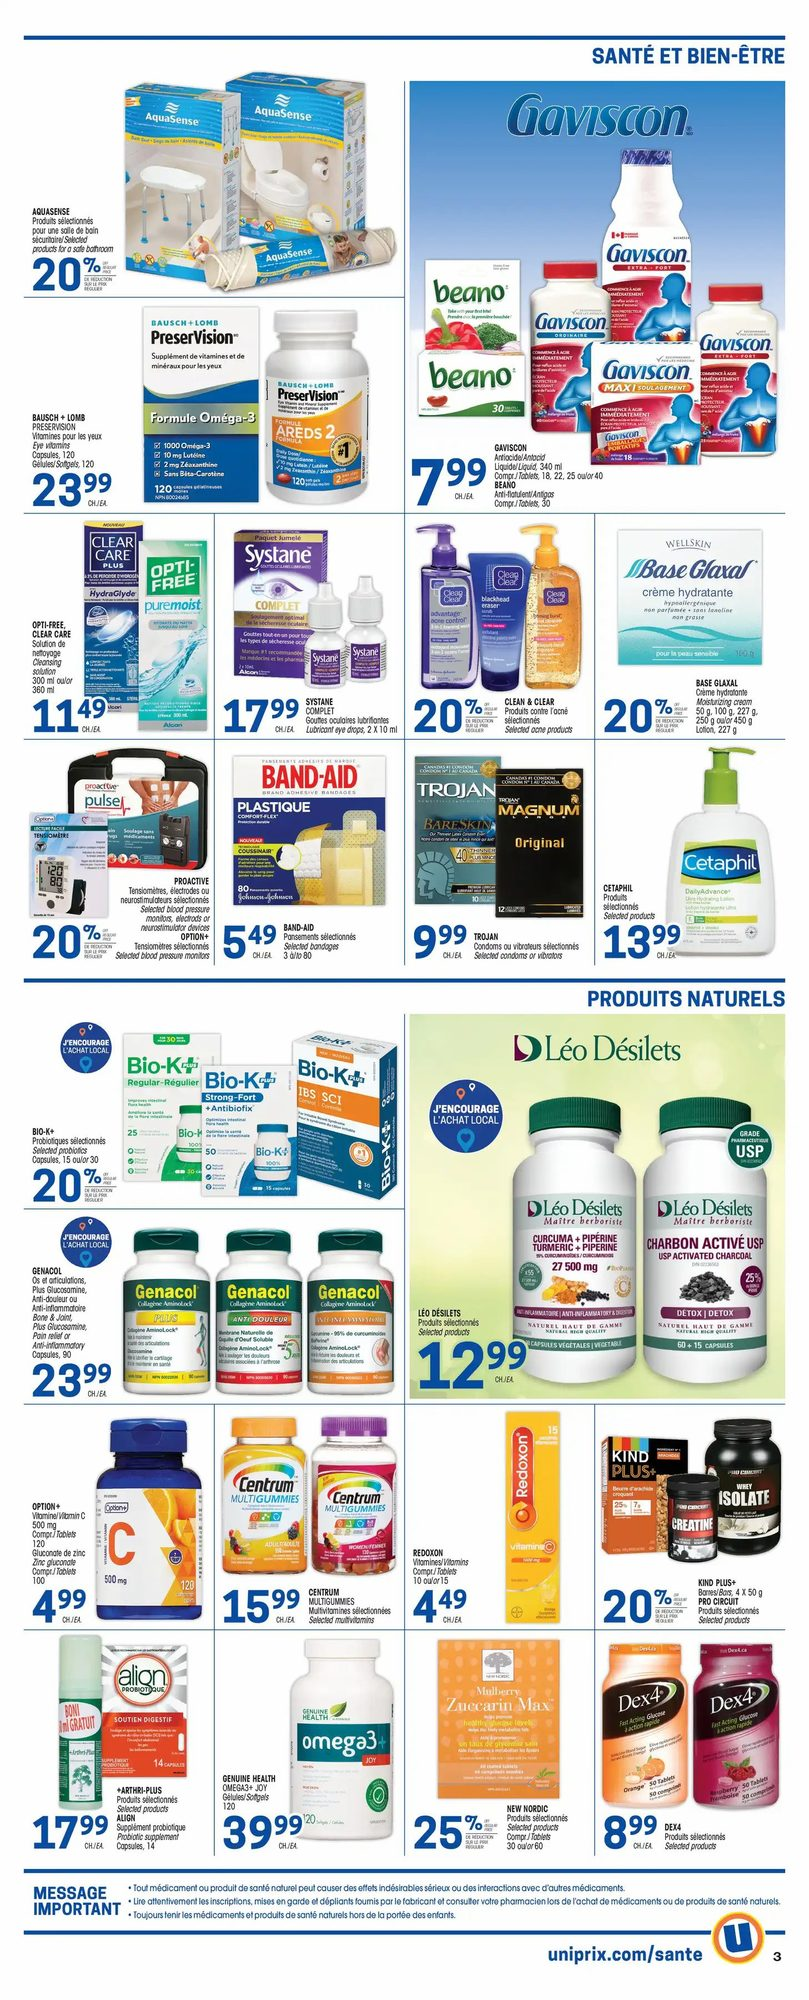 Uniprix - Weekly Flyer Specials - Page 5